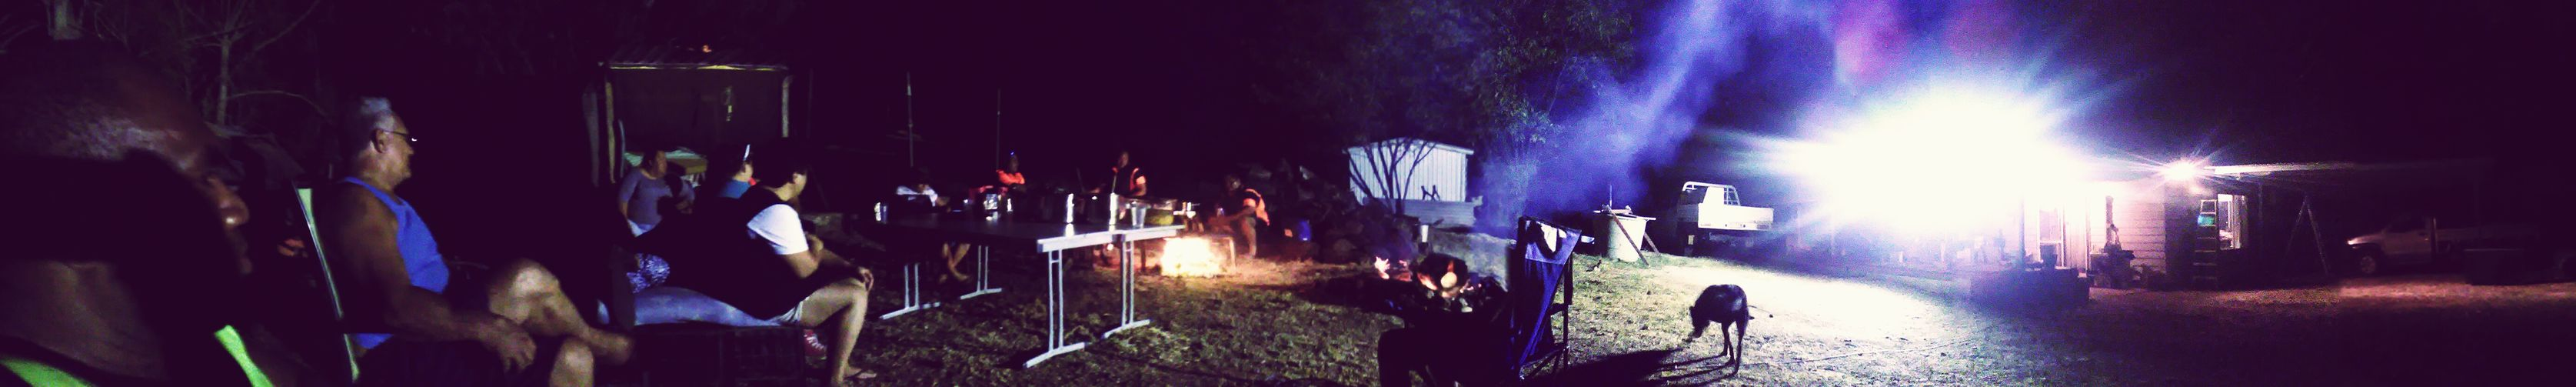 Around the fire with family. Hanging Out First Eyeem Photo